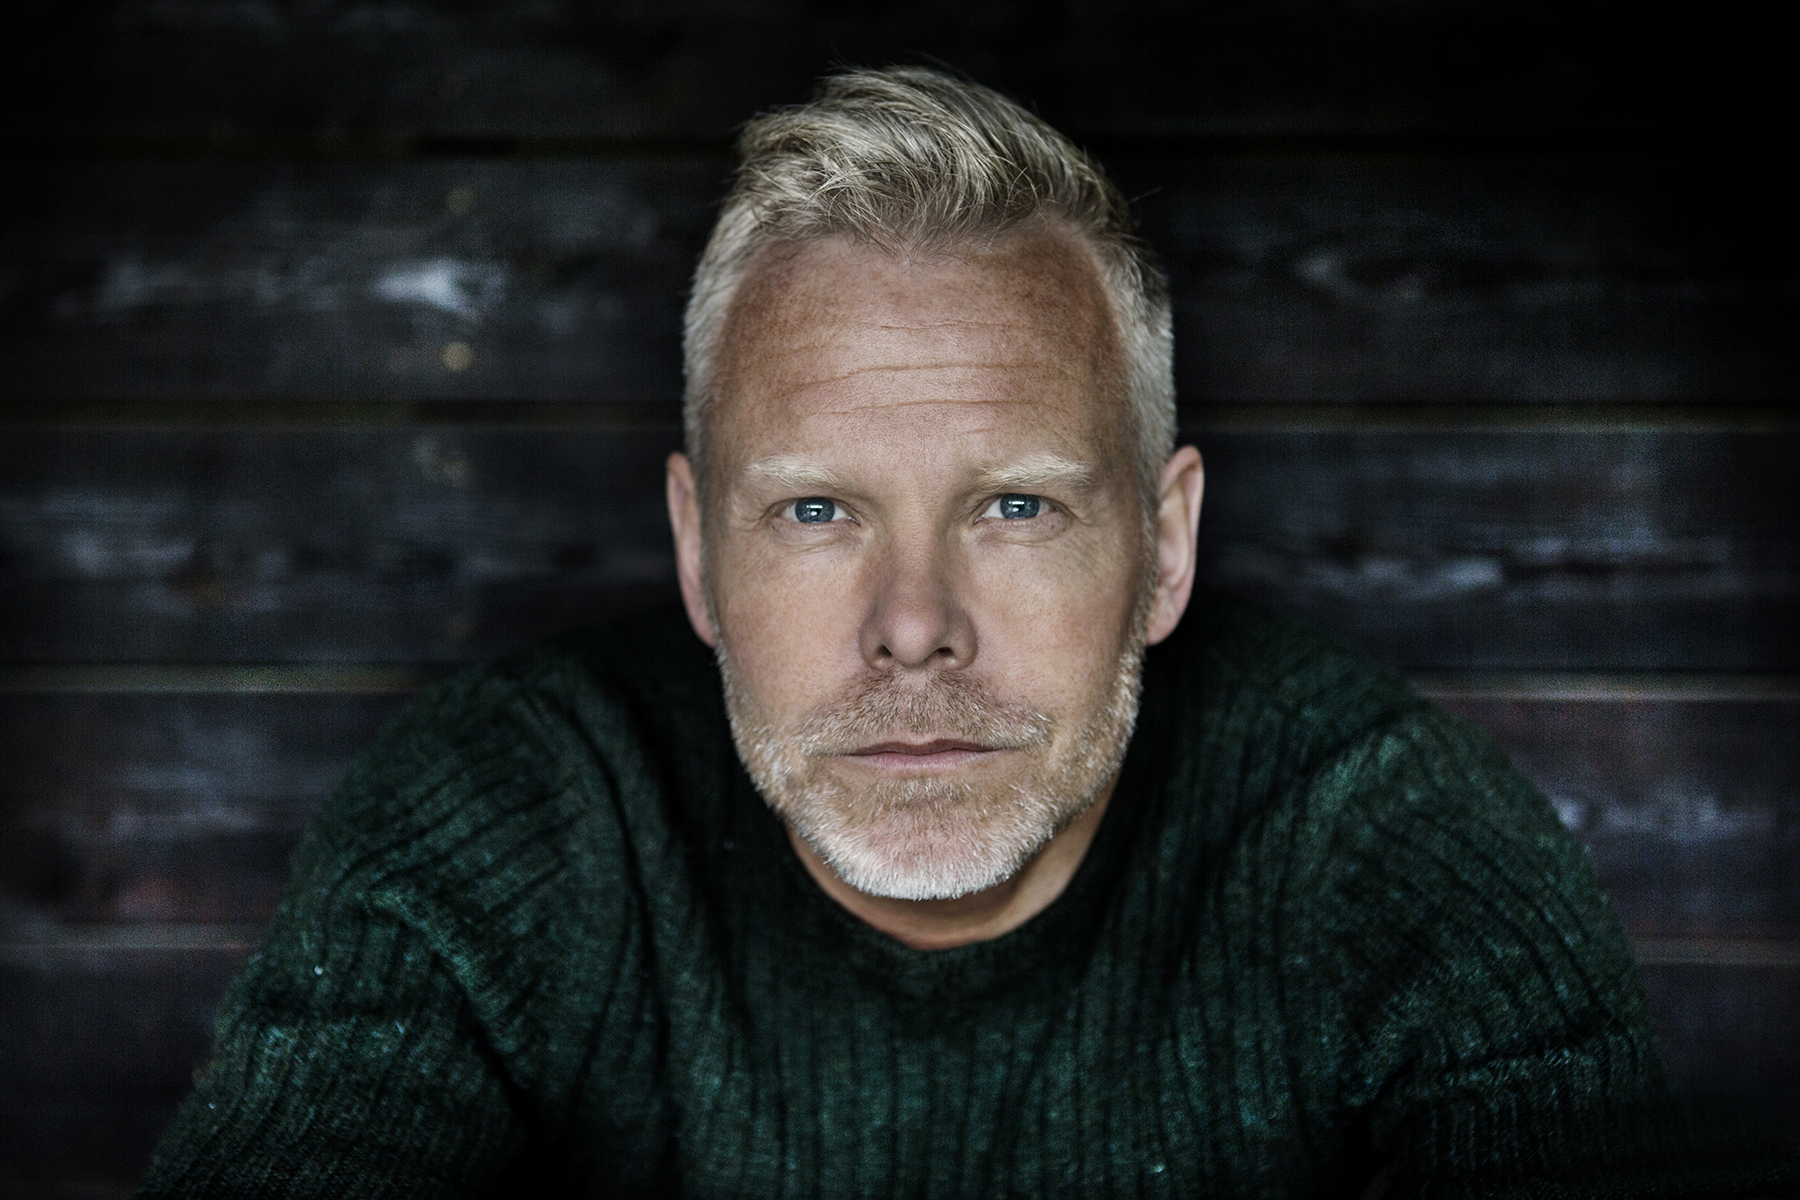 Danish actor/writer Morten Kirkskov